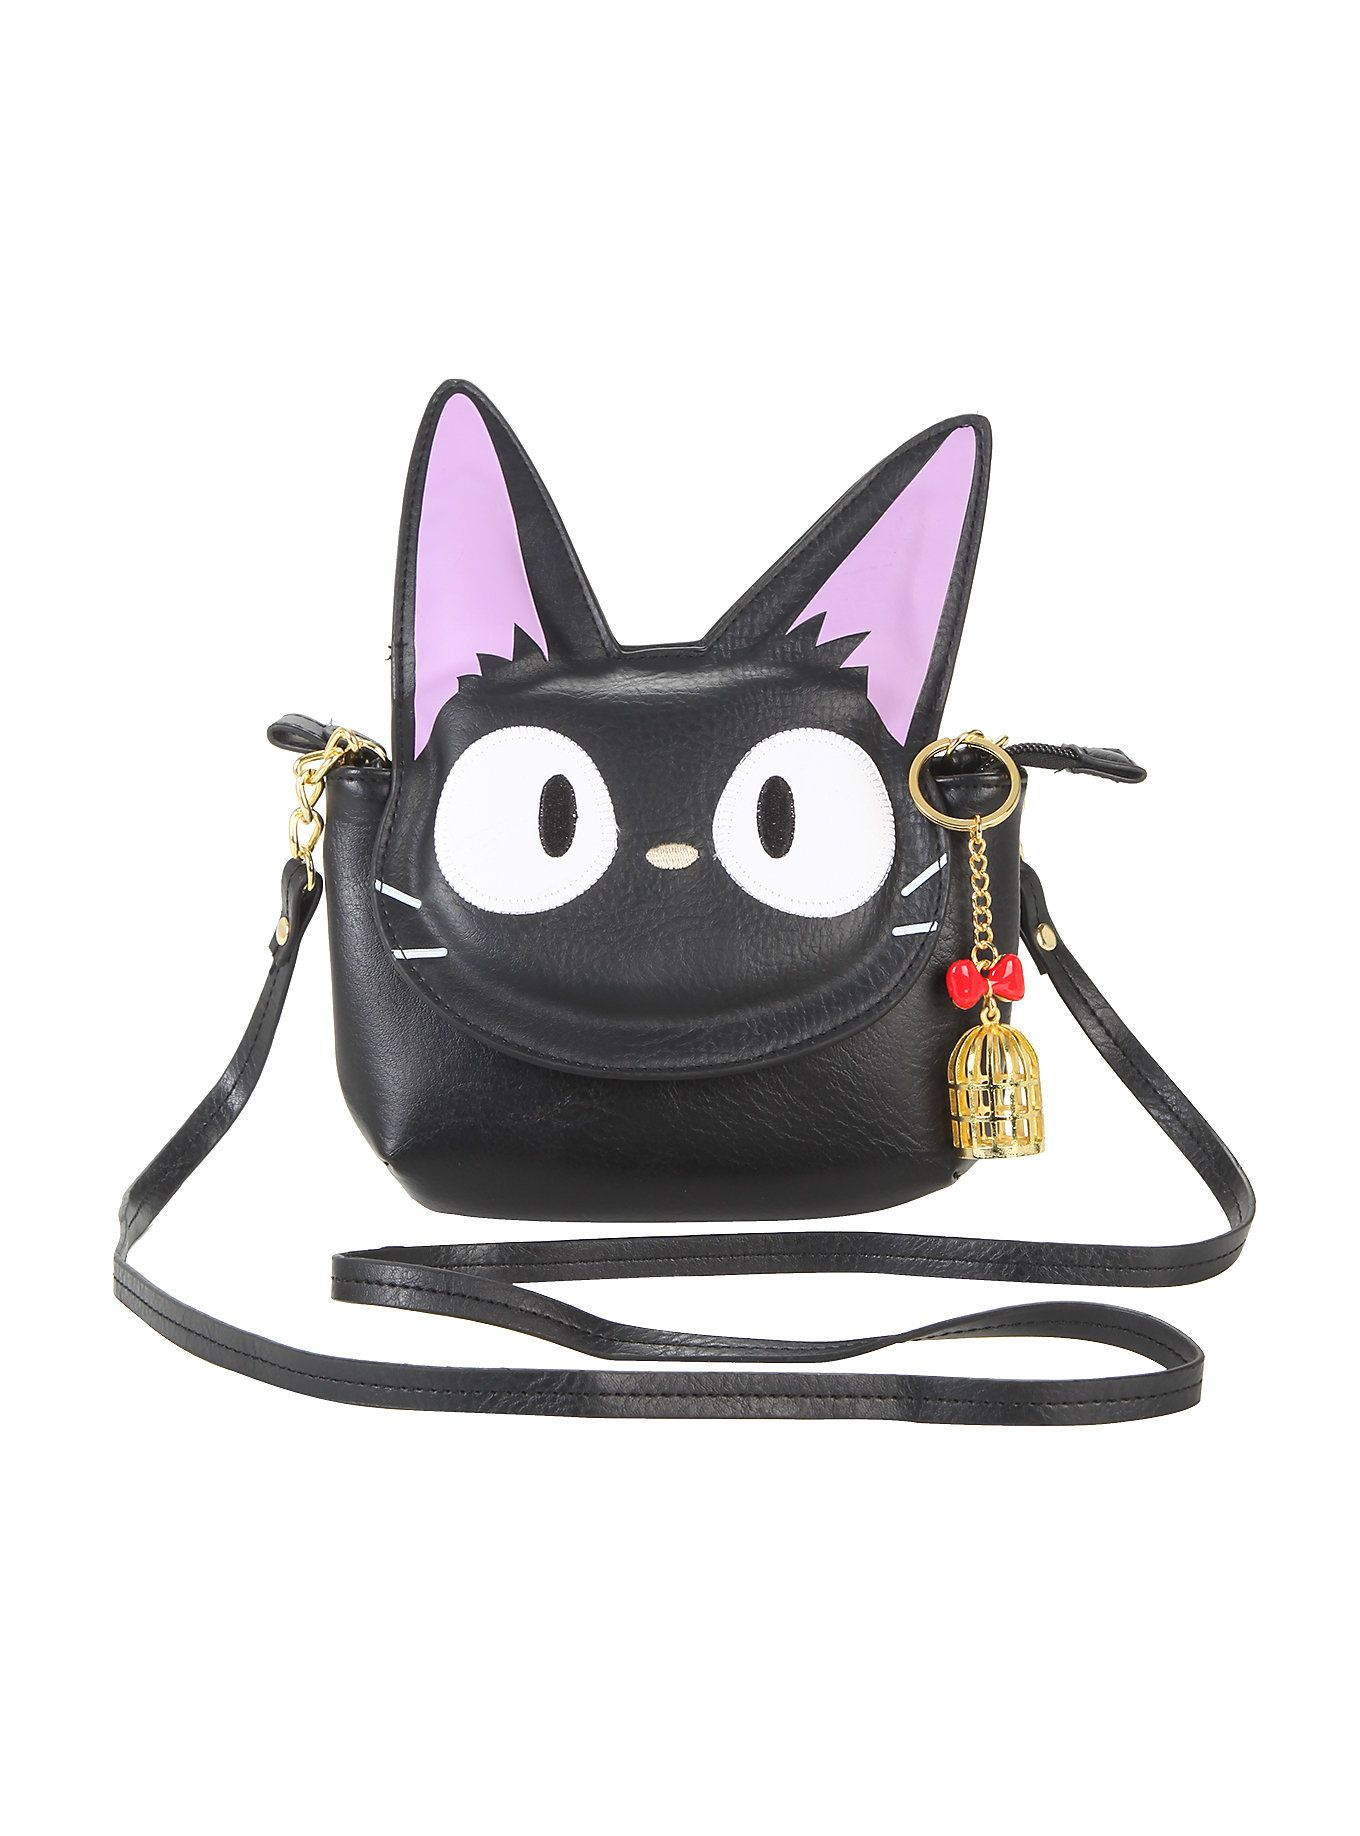 Home Anime Resident Evil Umbrella Black Women Shoulder Bags Messenger Bag Cartoon Lolita Pu Leather Shoulder School Crossbody Bags Factory Direct Selling Price